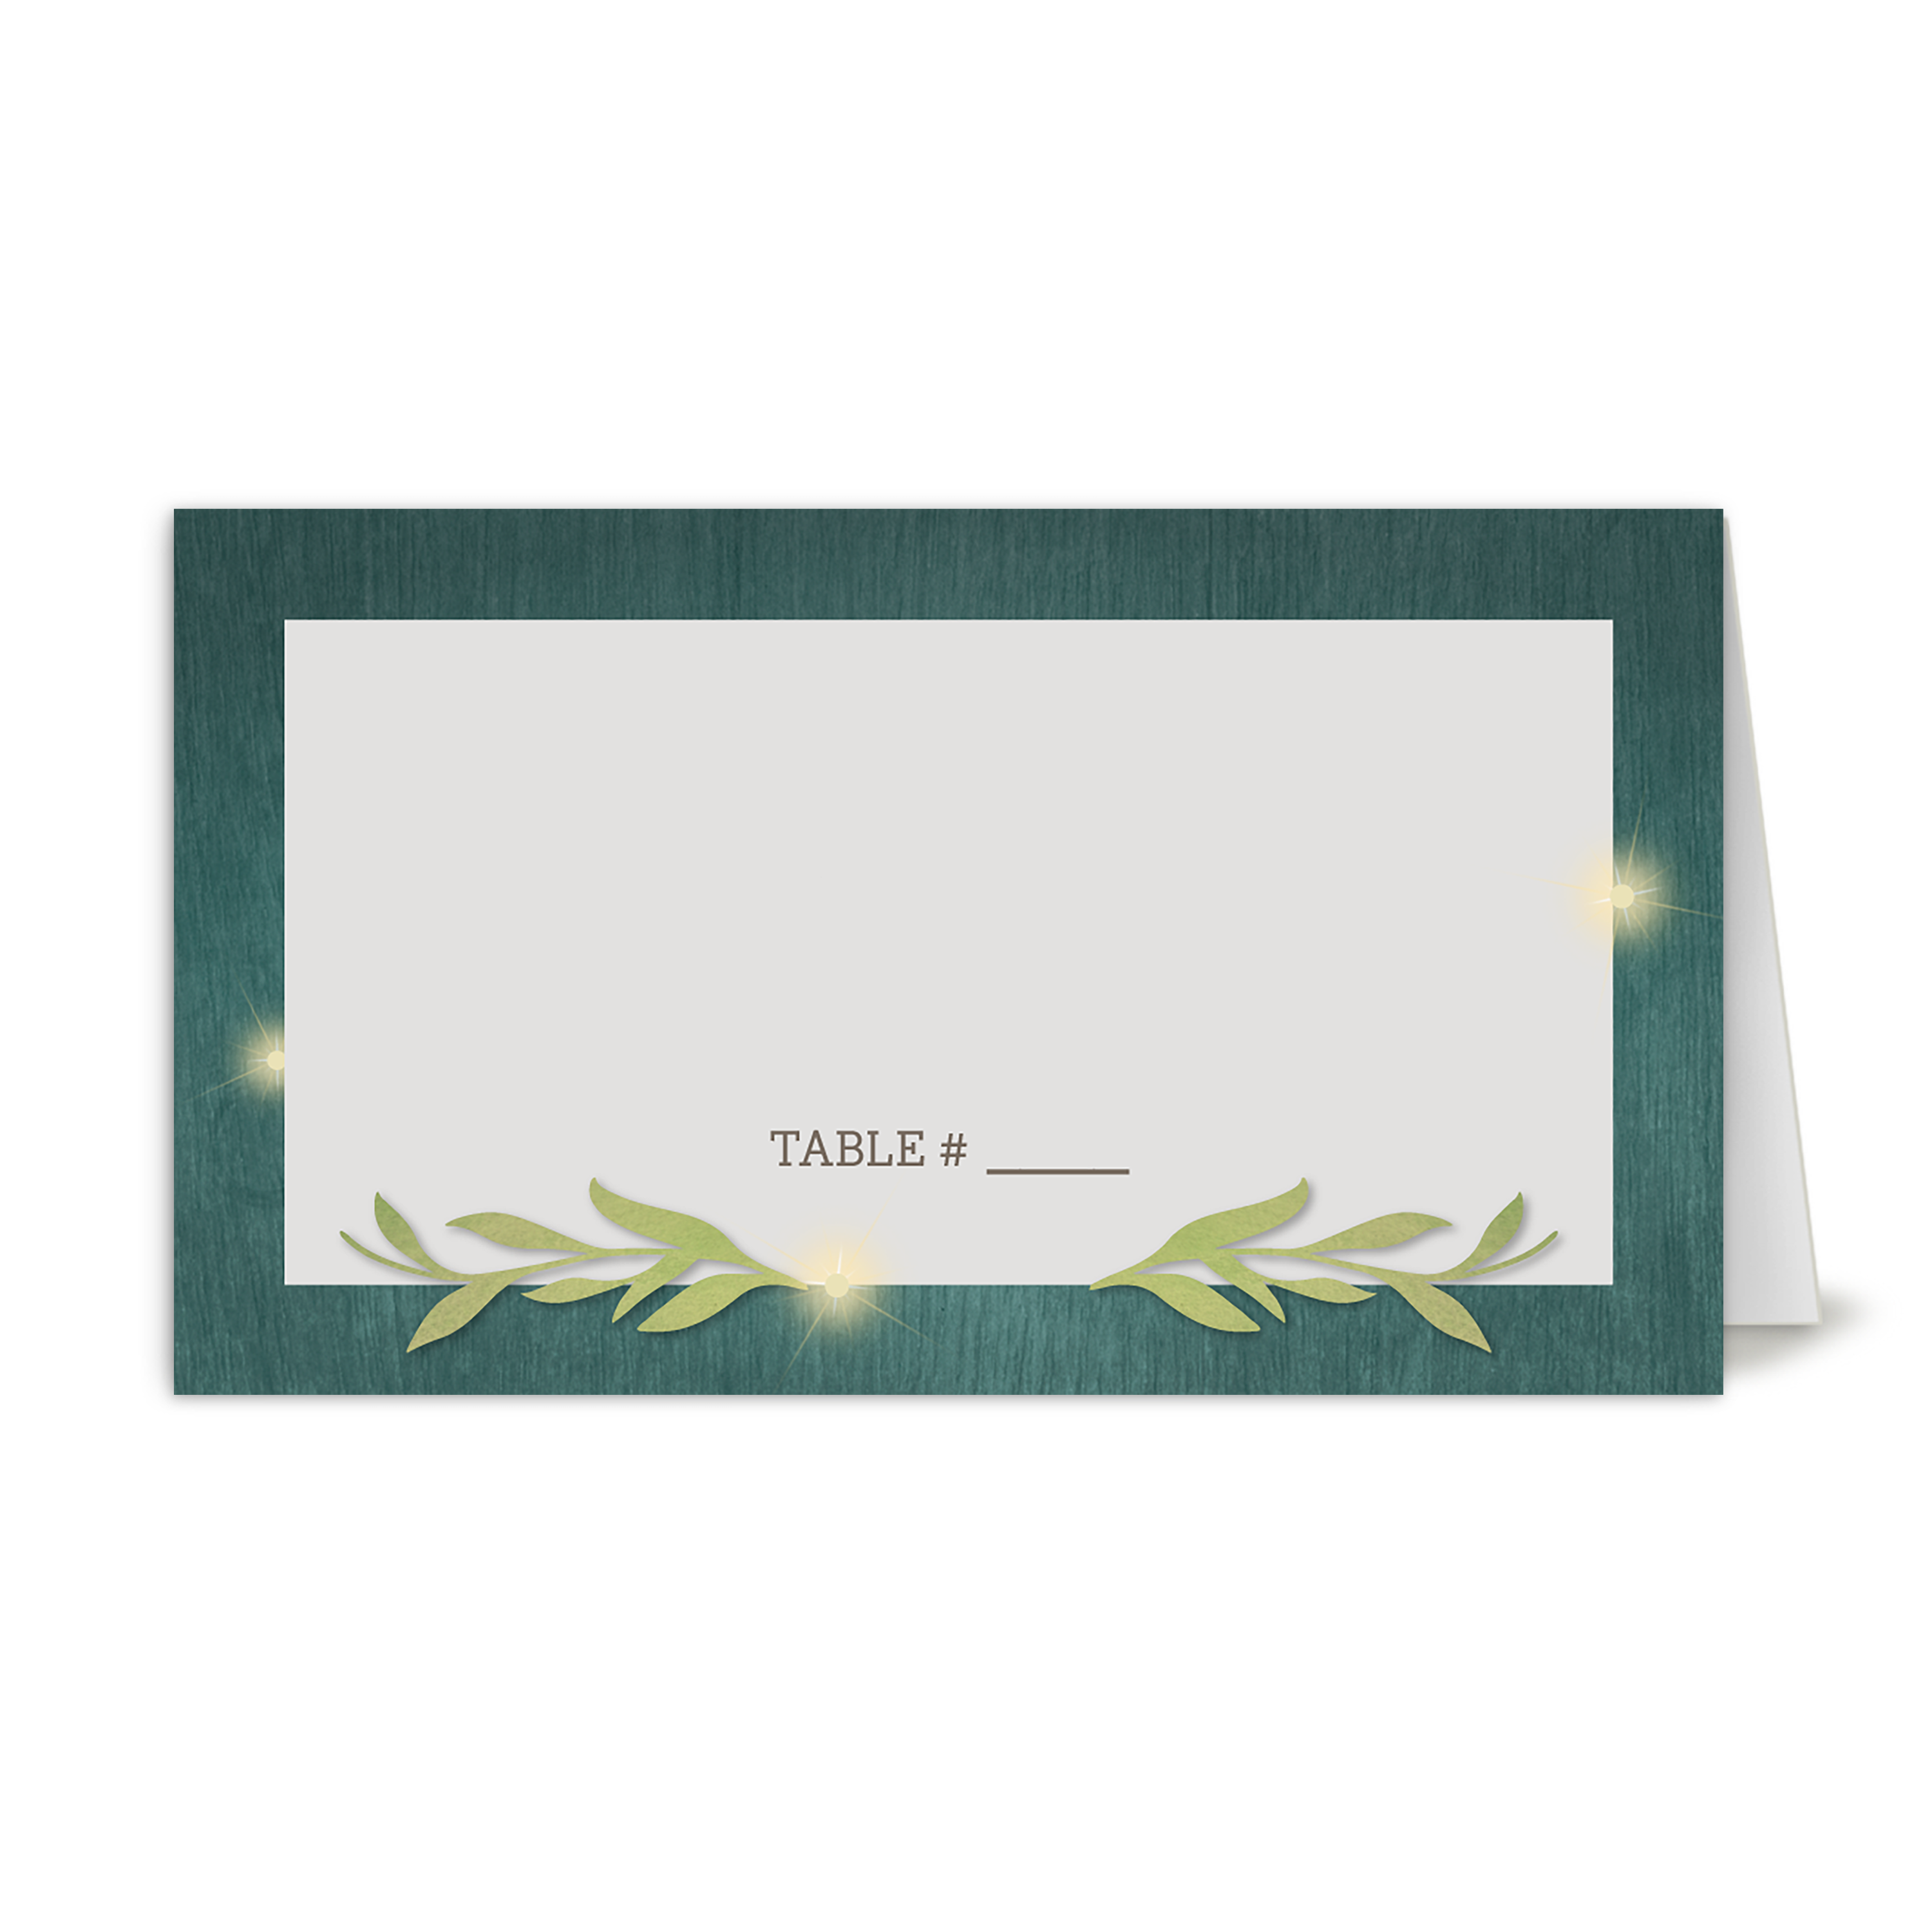 Personalized Wedding Place Card - Greenery Lights - 3.5 x 2 Folded